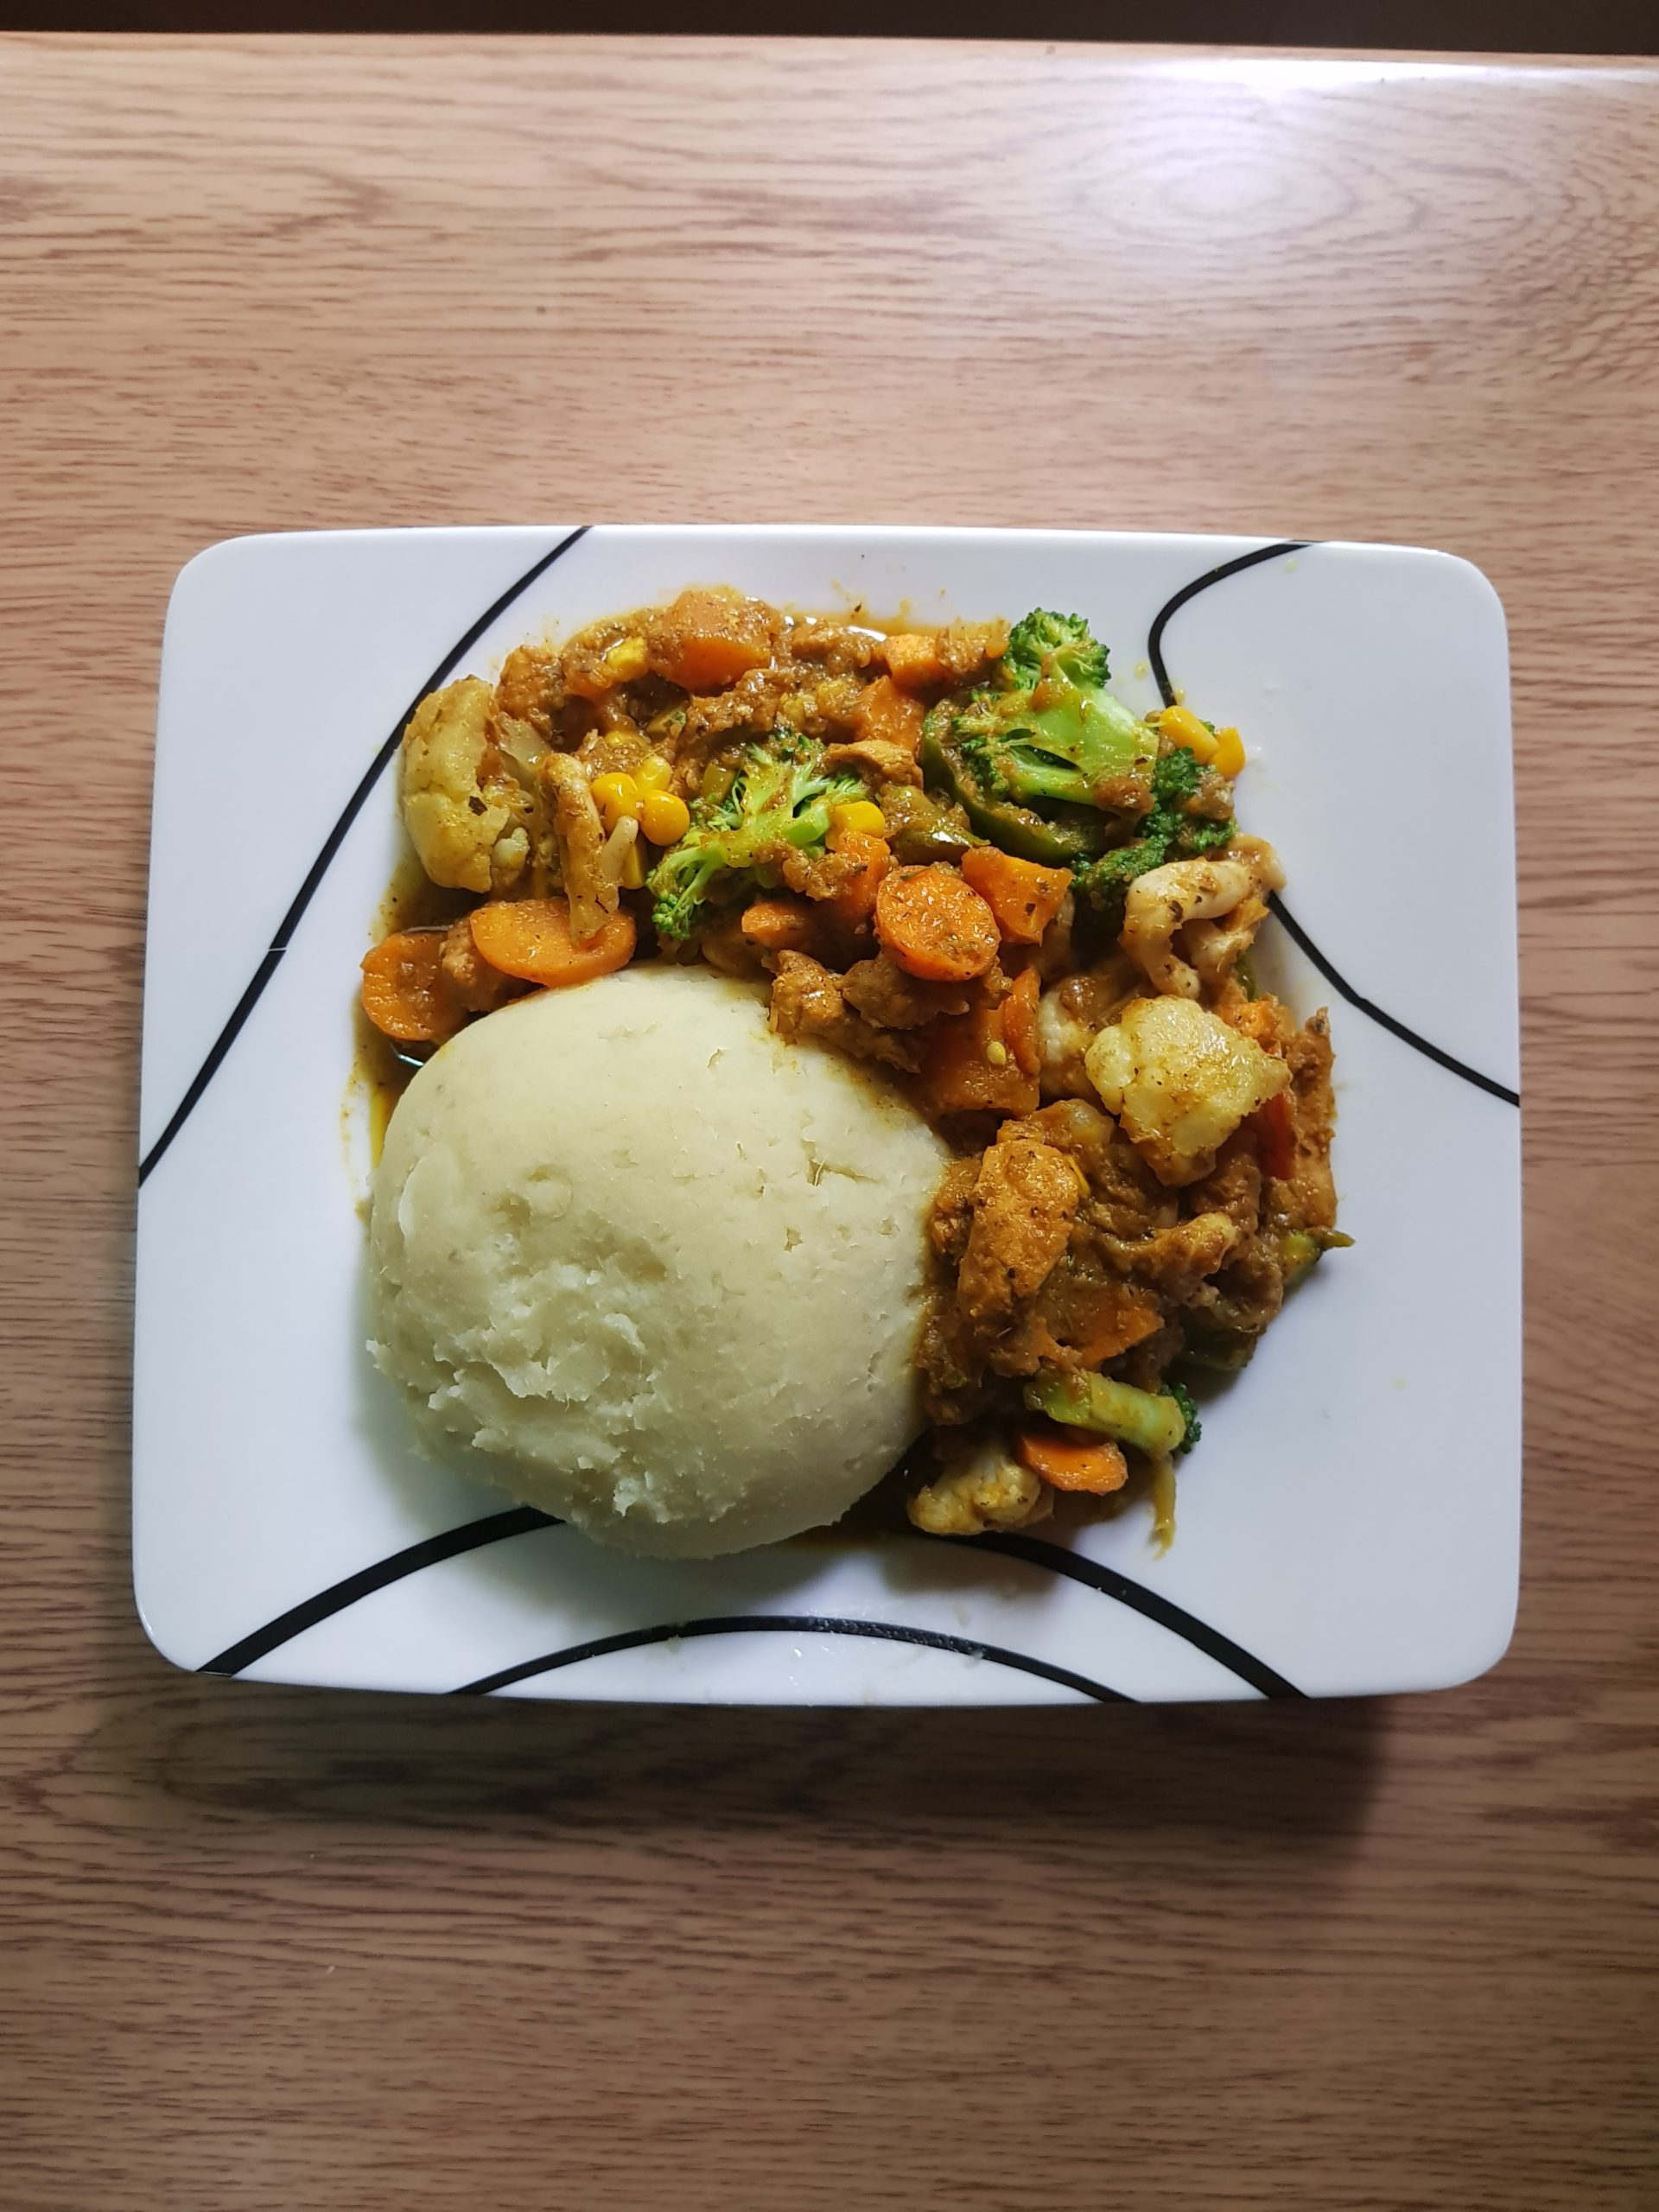 Healthy Recipe For Diabetic Patients Mashed Sweet Potatoes With Vegetable Mix The Anti Diabetes Lifestyle